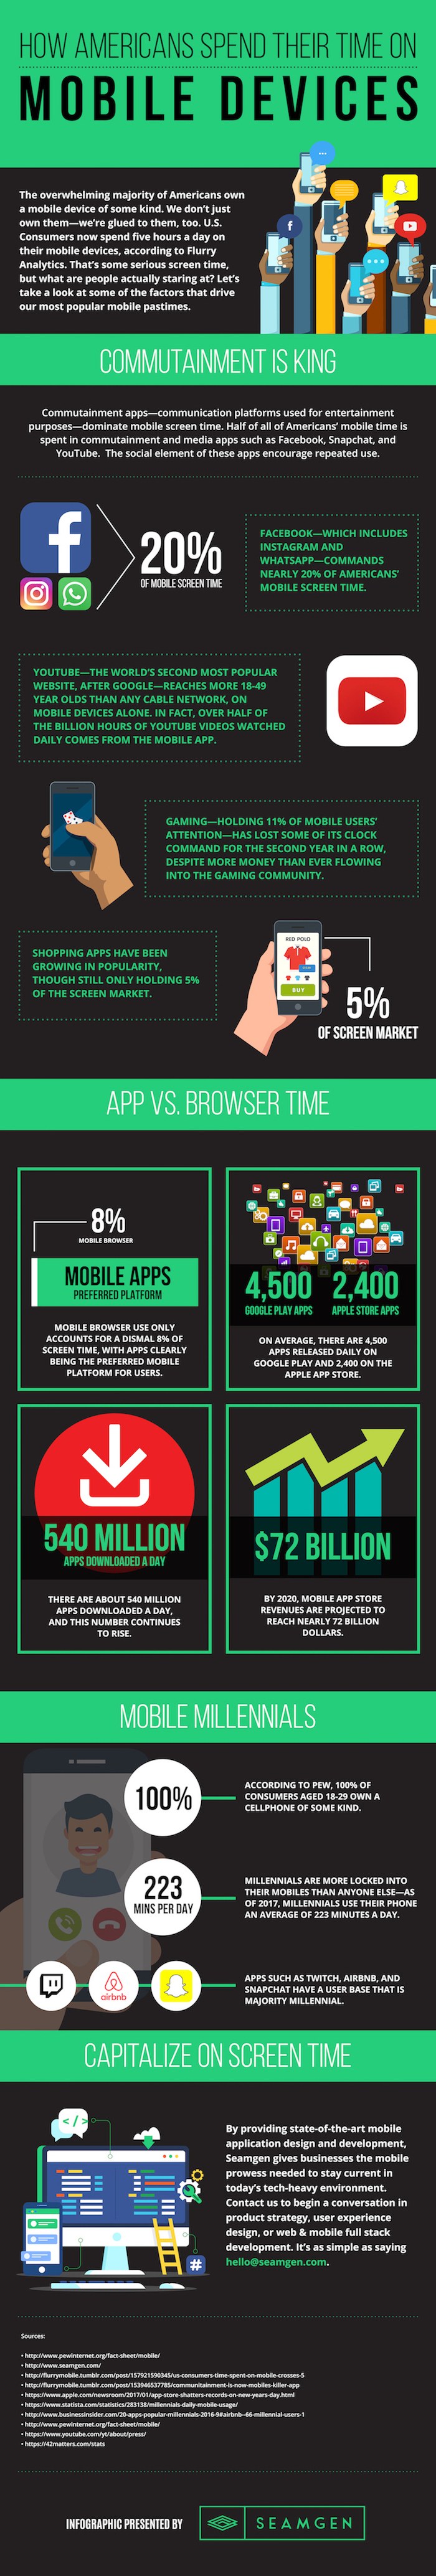 Infographic about how Americans spend their time on mobile devices